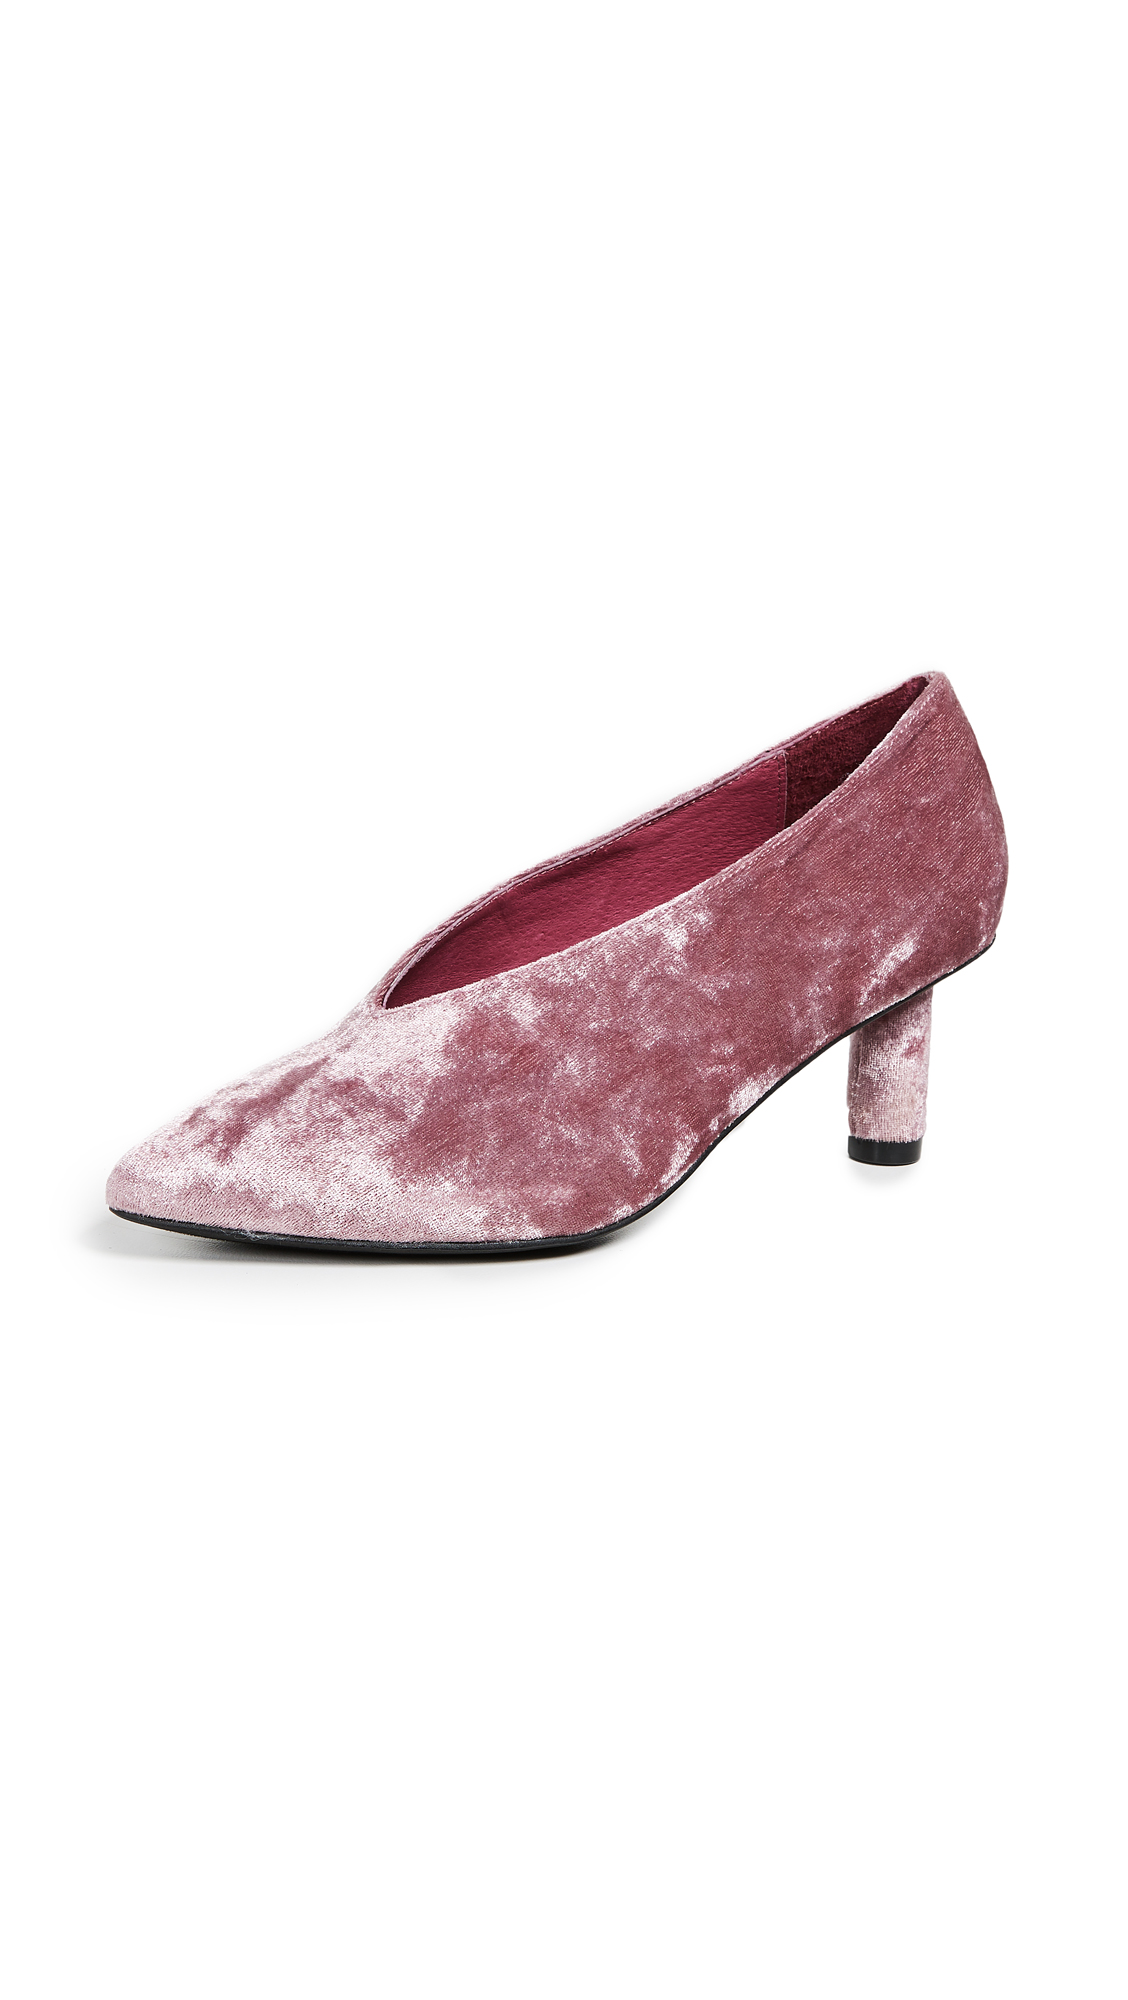 Jeffrey Campbell Carla Point Toe Pumps - Mauve